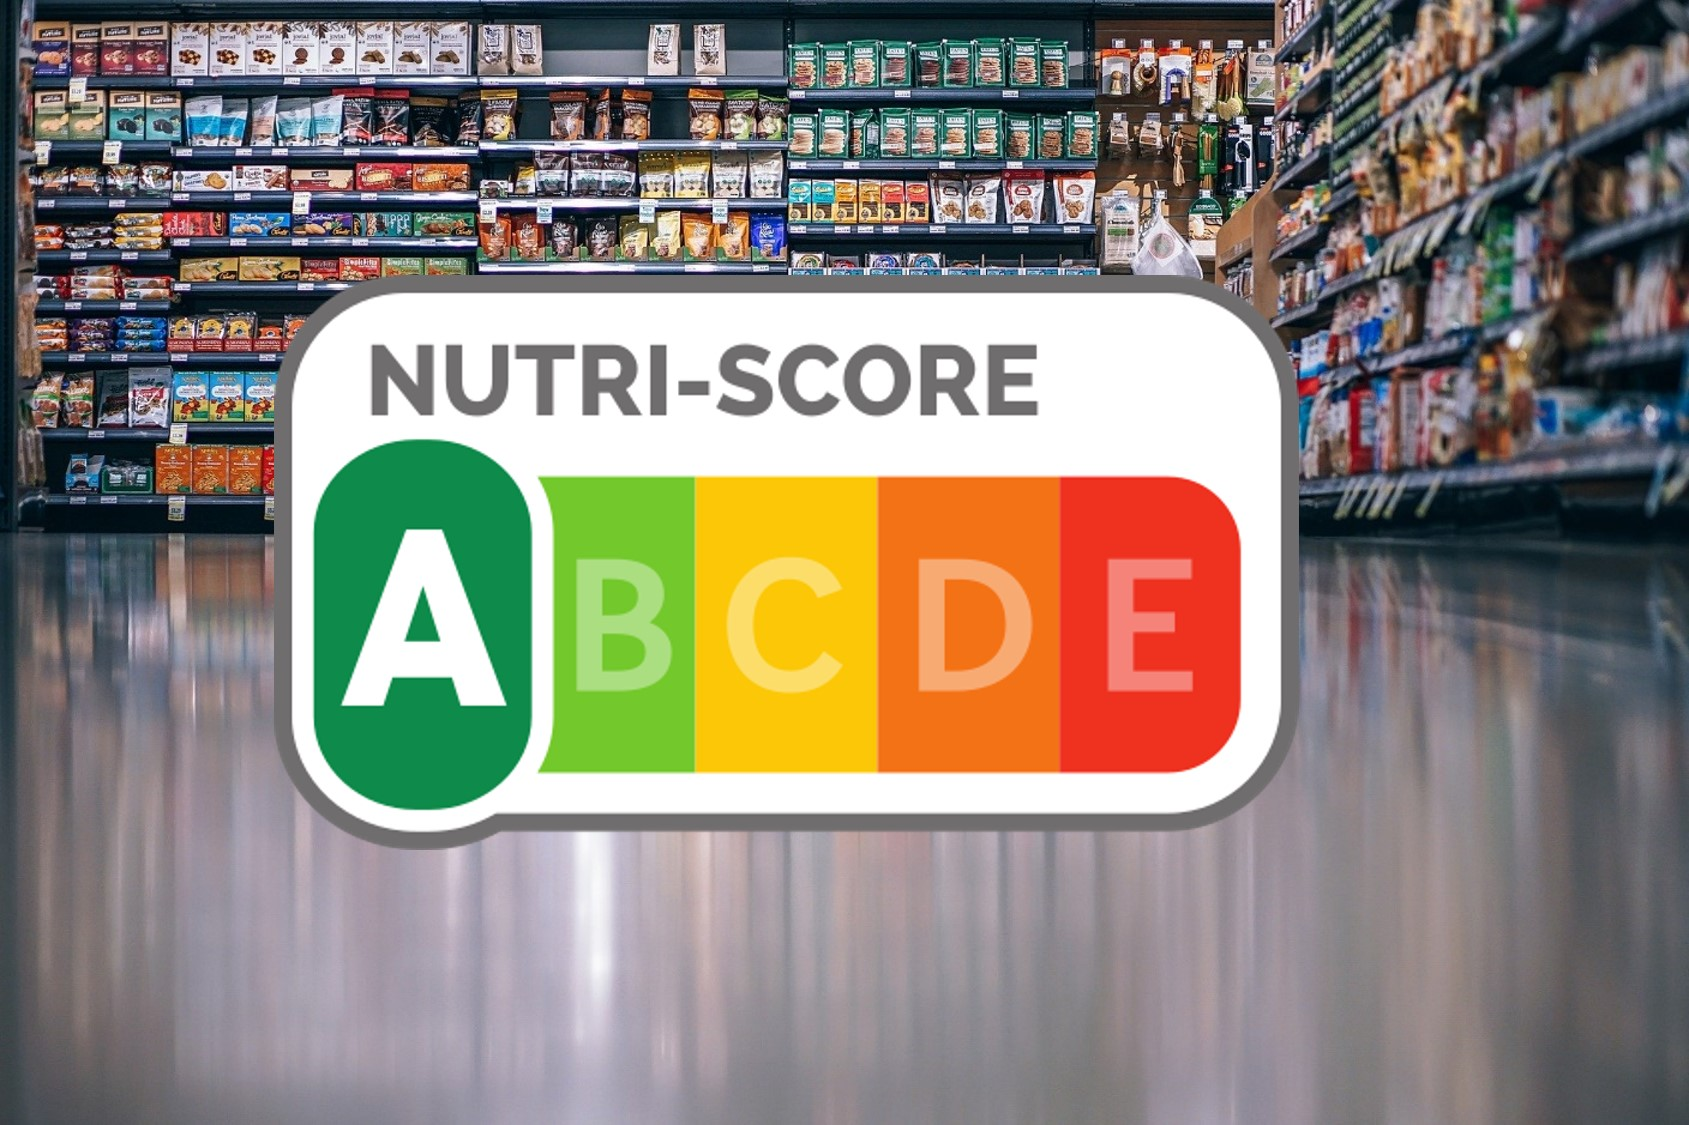 Nutriscore-Logo vor Supermarkt-Regal